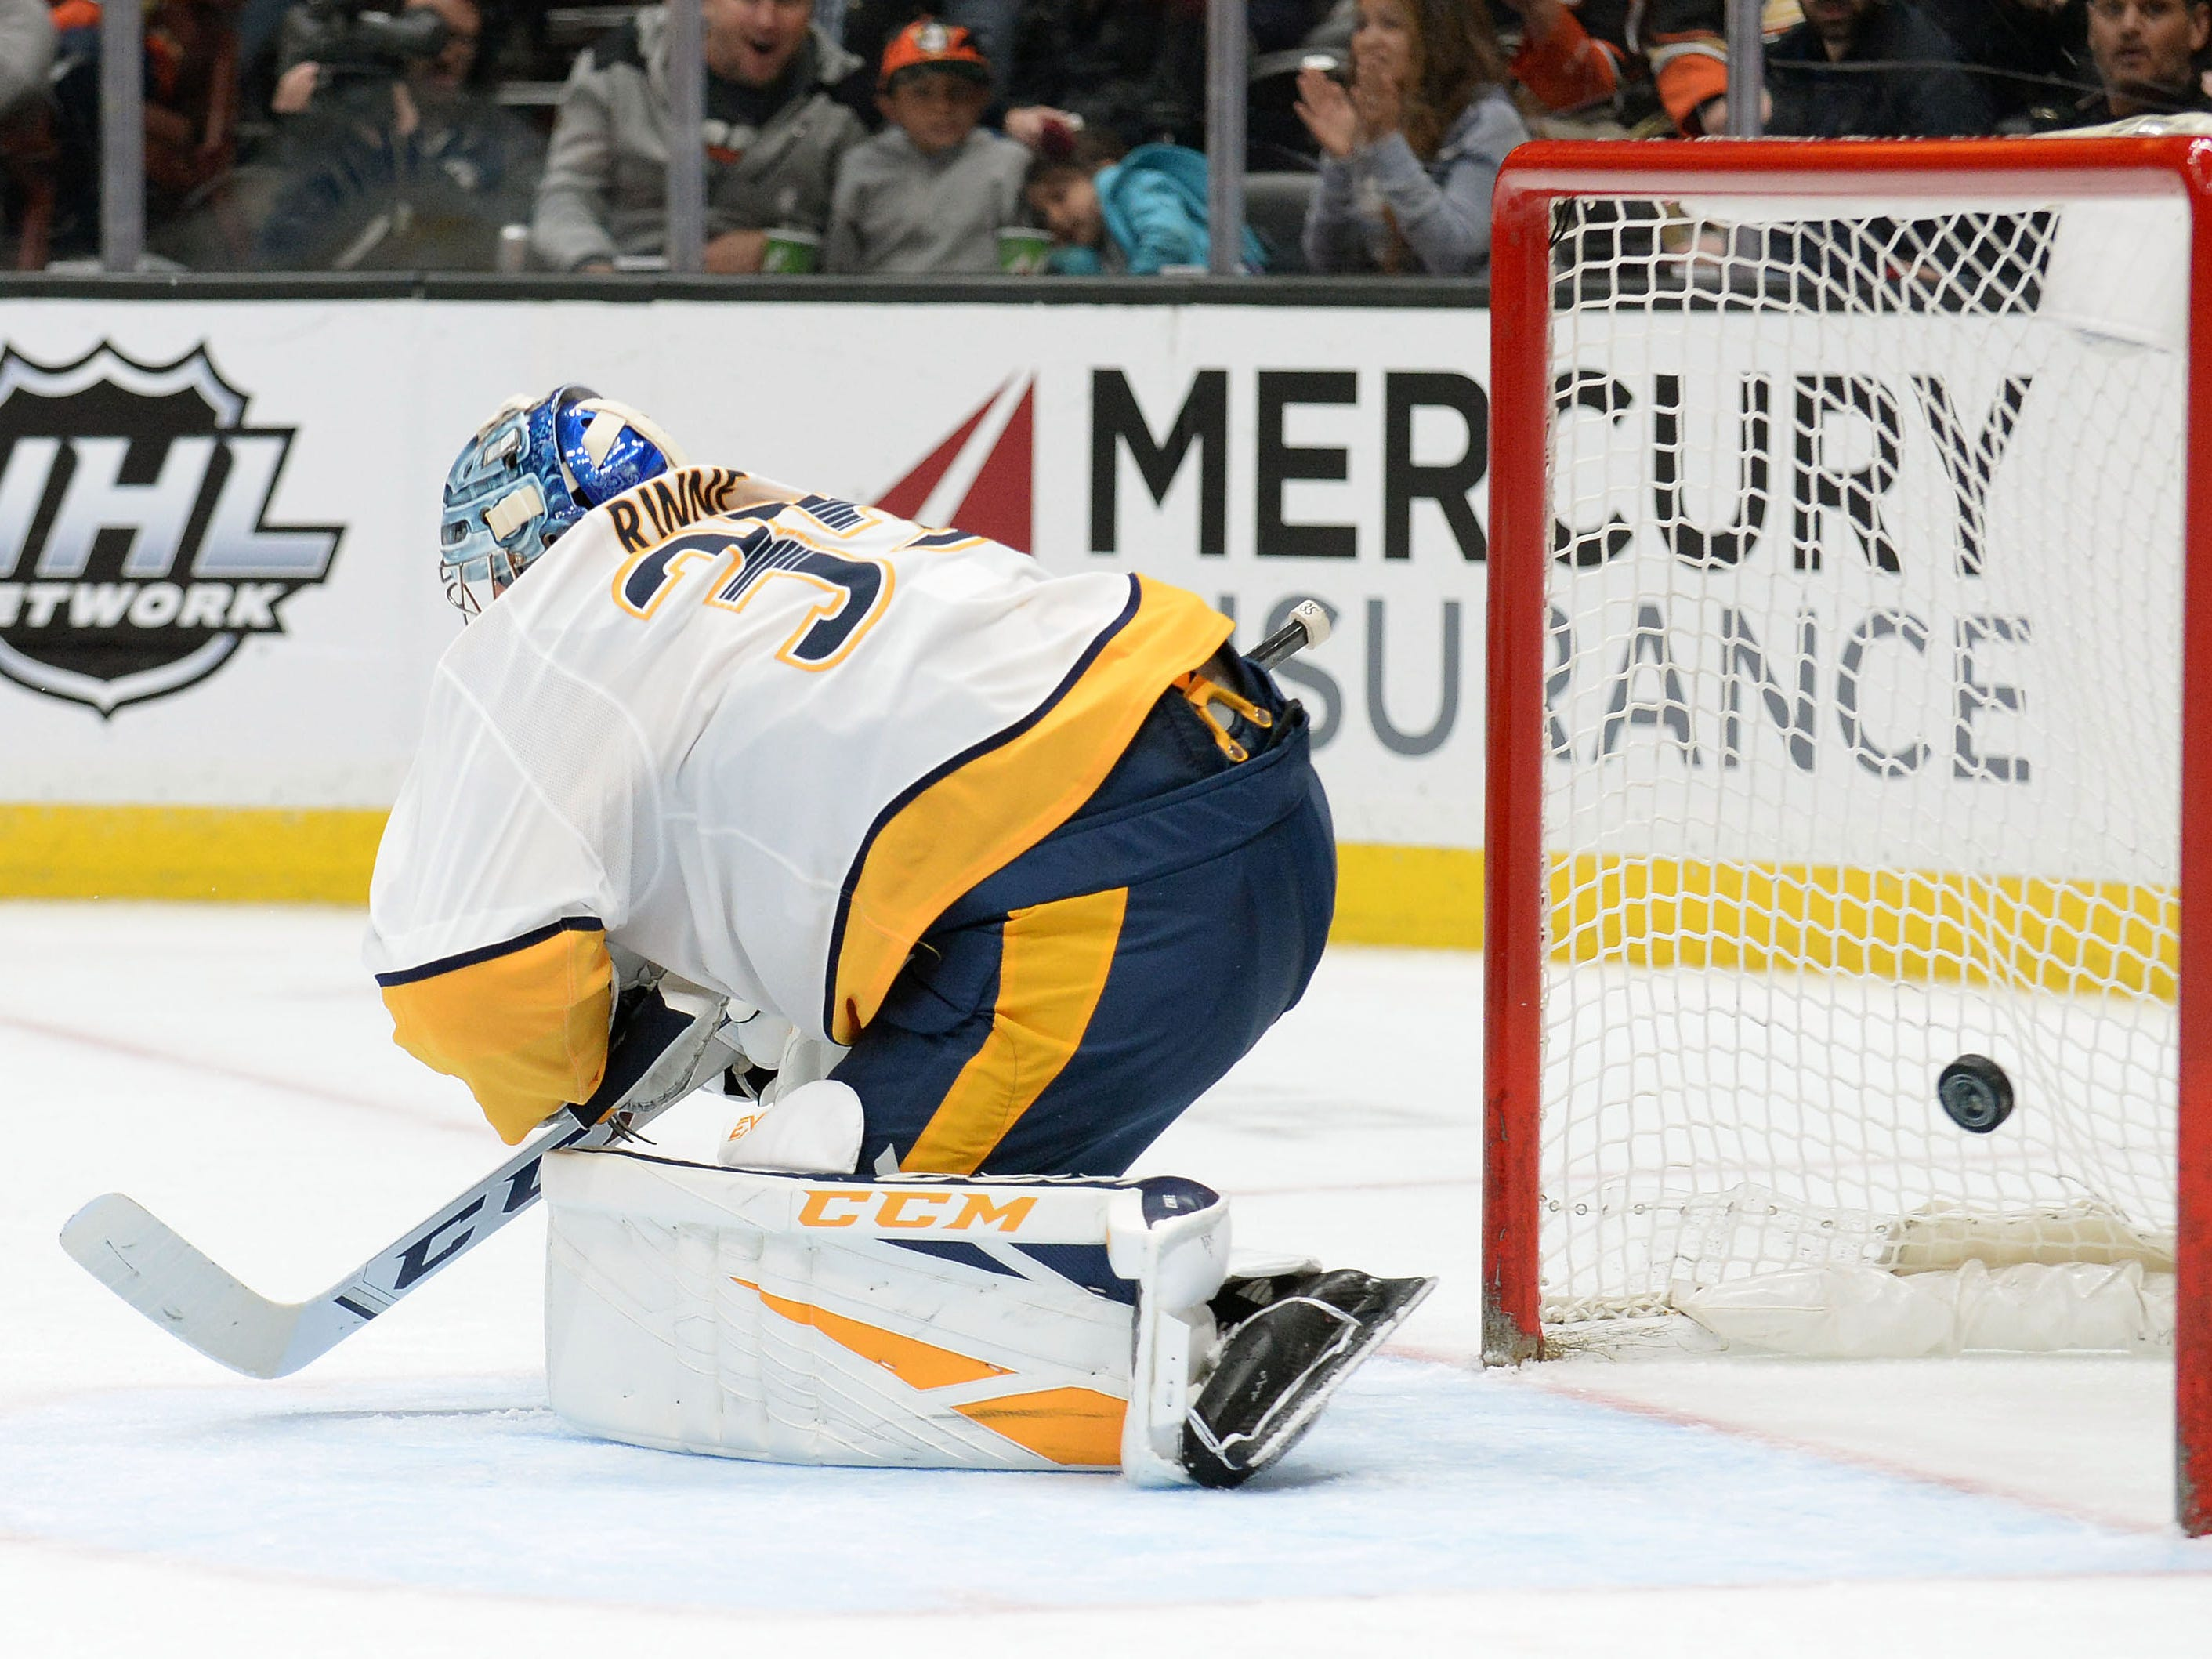 Nashville Predators goaltender Pekka Rinne (35) allows a goal scored by Anaheim Ducks right wing Daniel Sprong (11) during the second period at Honda Center.